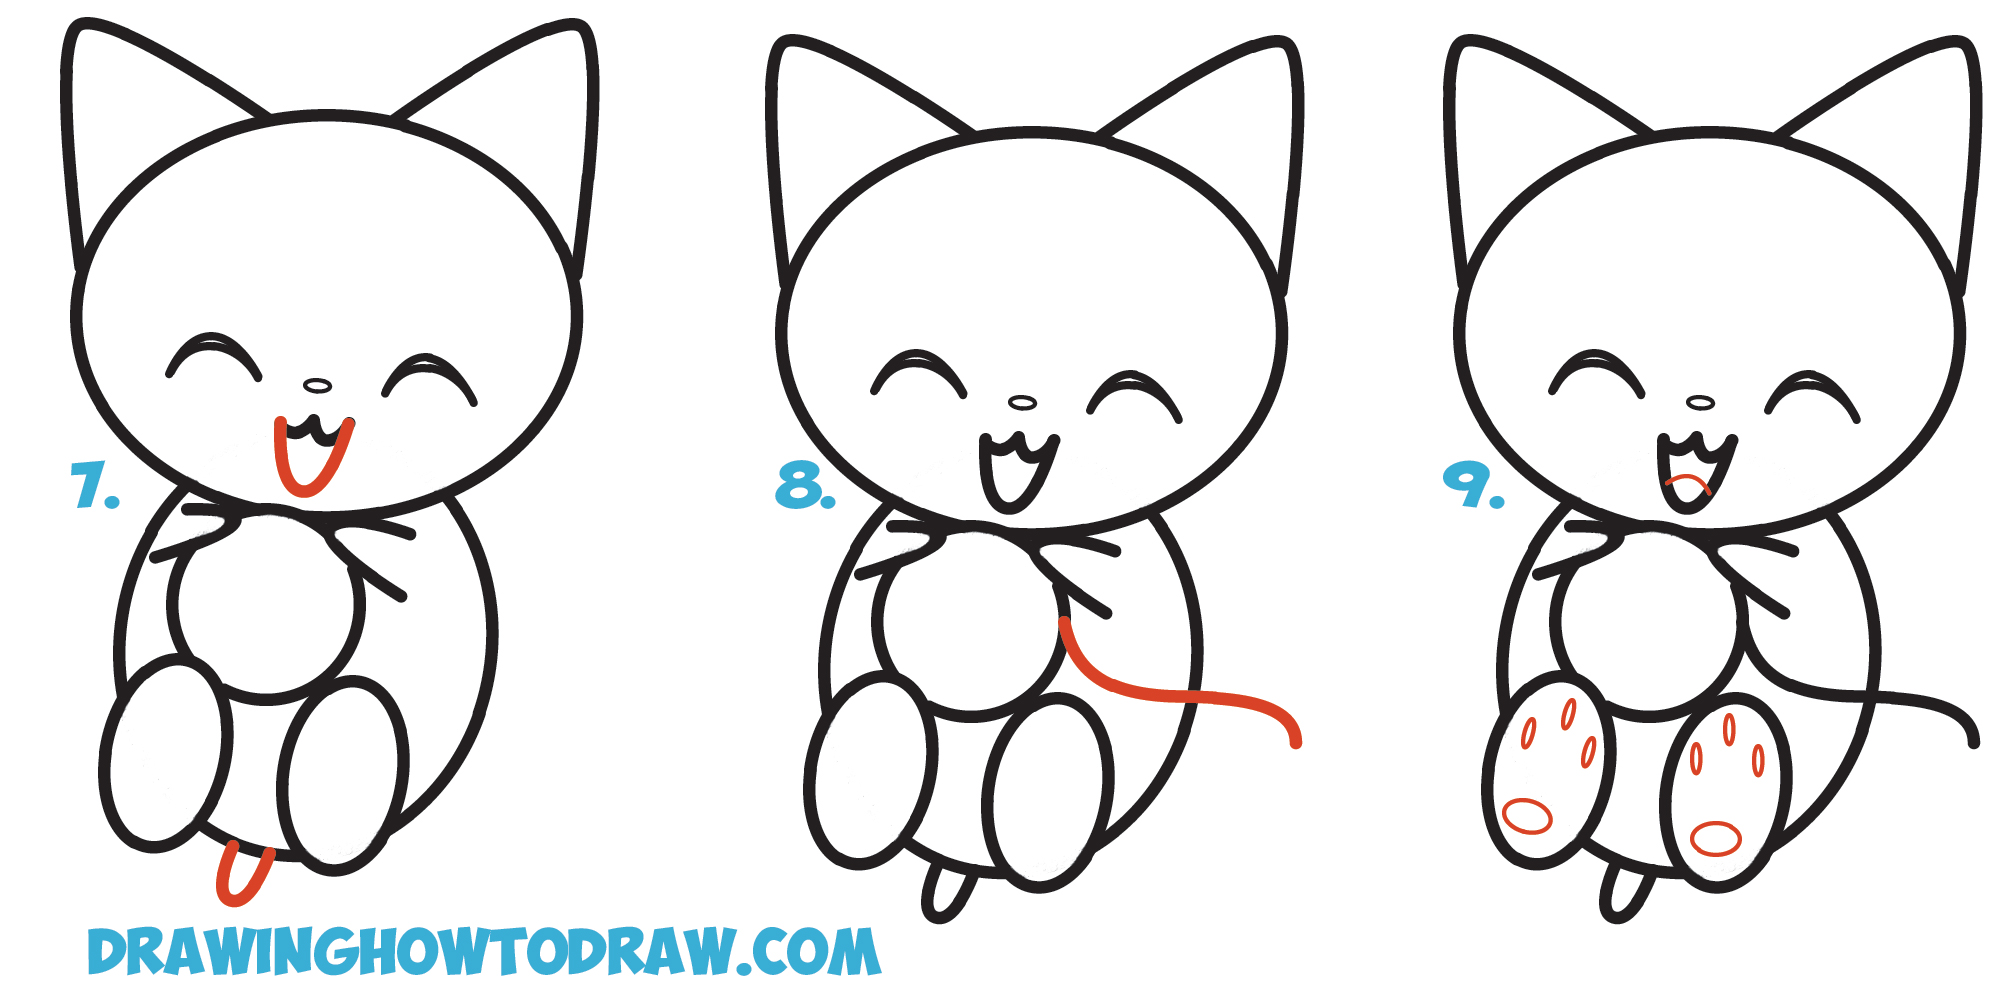 Uncategorized Draw Kitten how to draw cute kawaii kitten cat playing with yarn from number learn chibi cartoon yarn